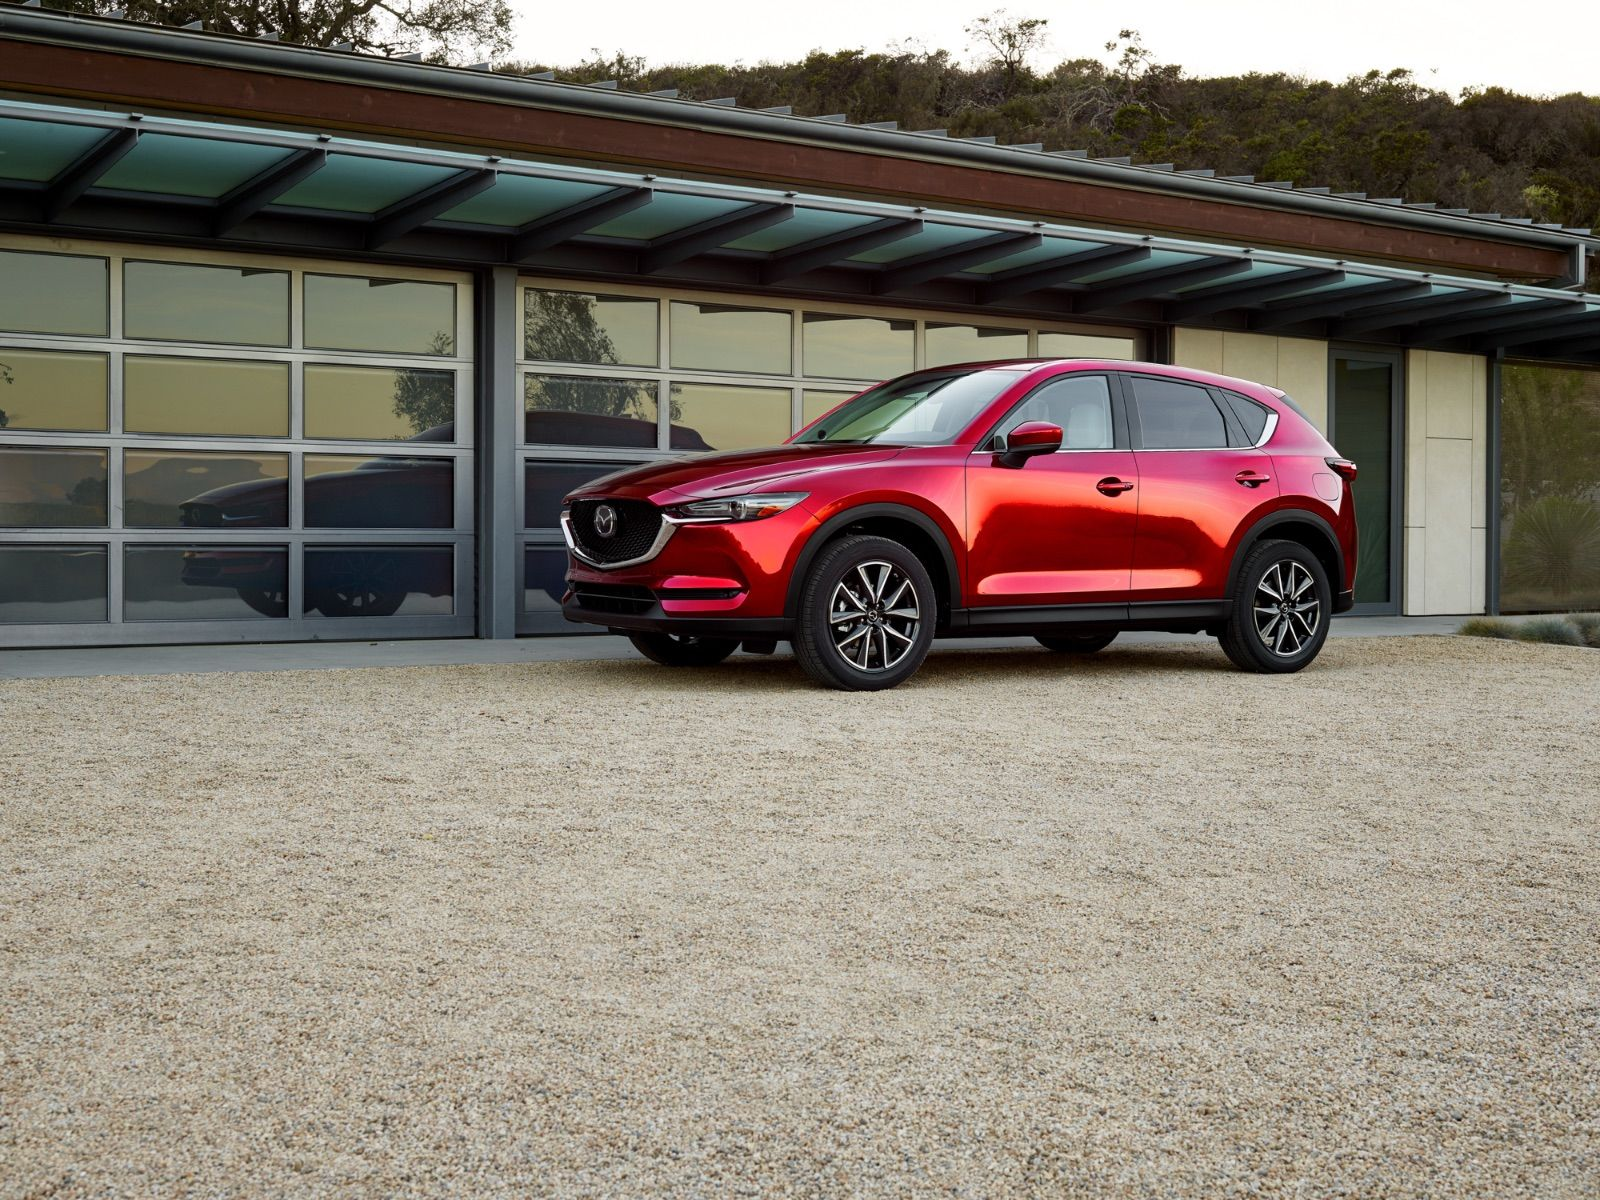 Mazda CX-5 vs Lexus NX300: Motor Trend Calls Them Equally Matched, But There's One Clear Distinction